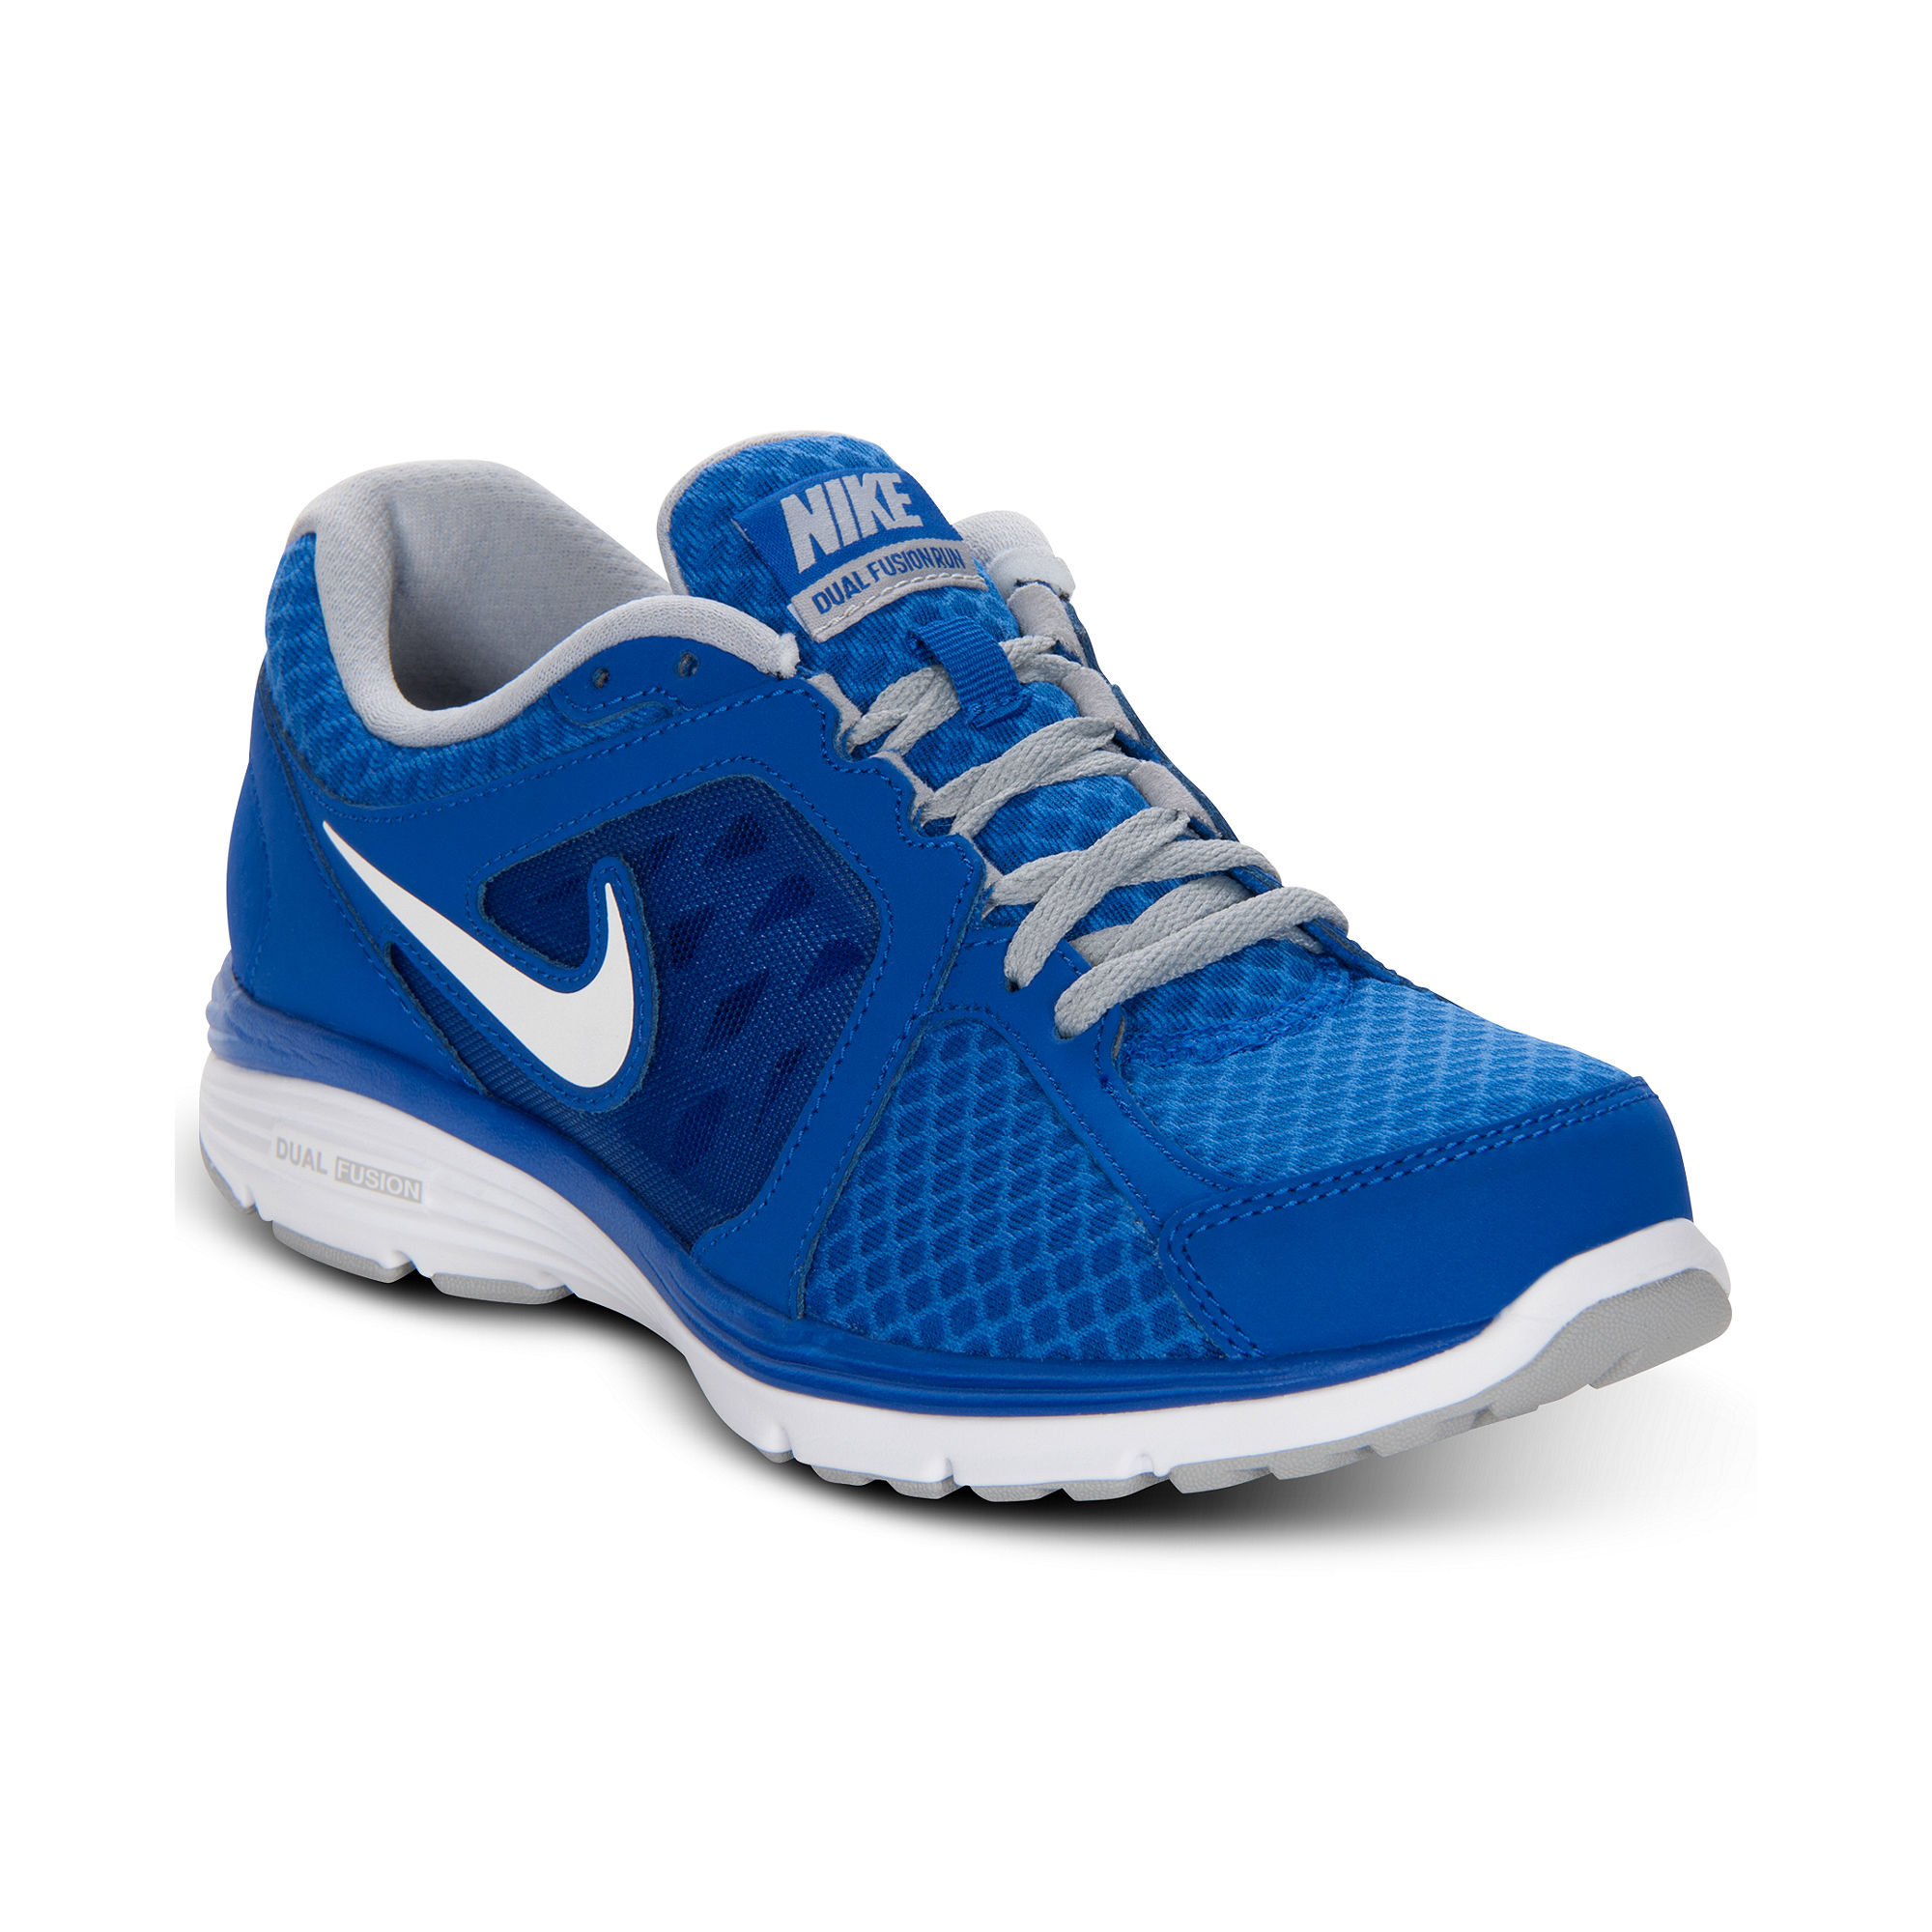 15221f9351bf77 Lyst - Nike Dual Fusion Run Breathe Sneakers in Blue for Men